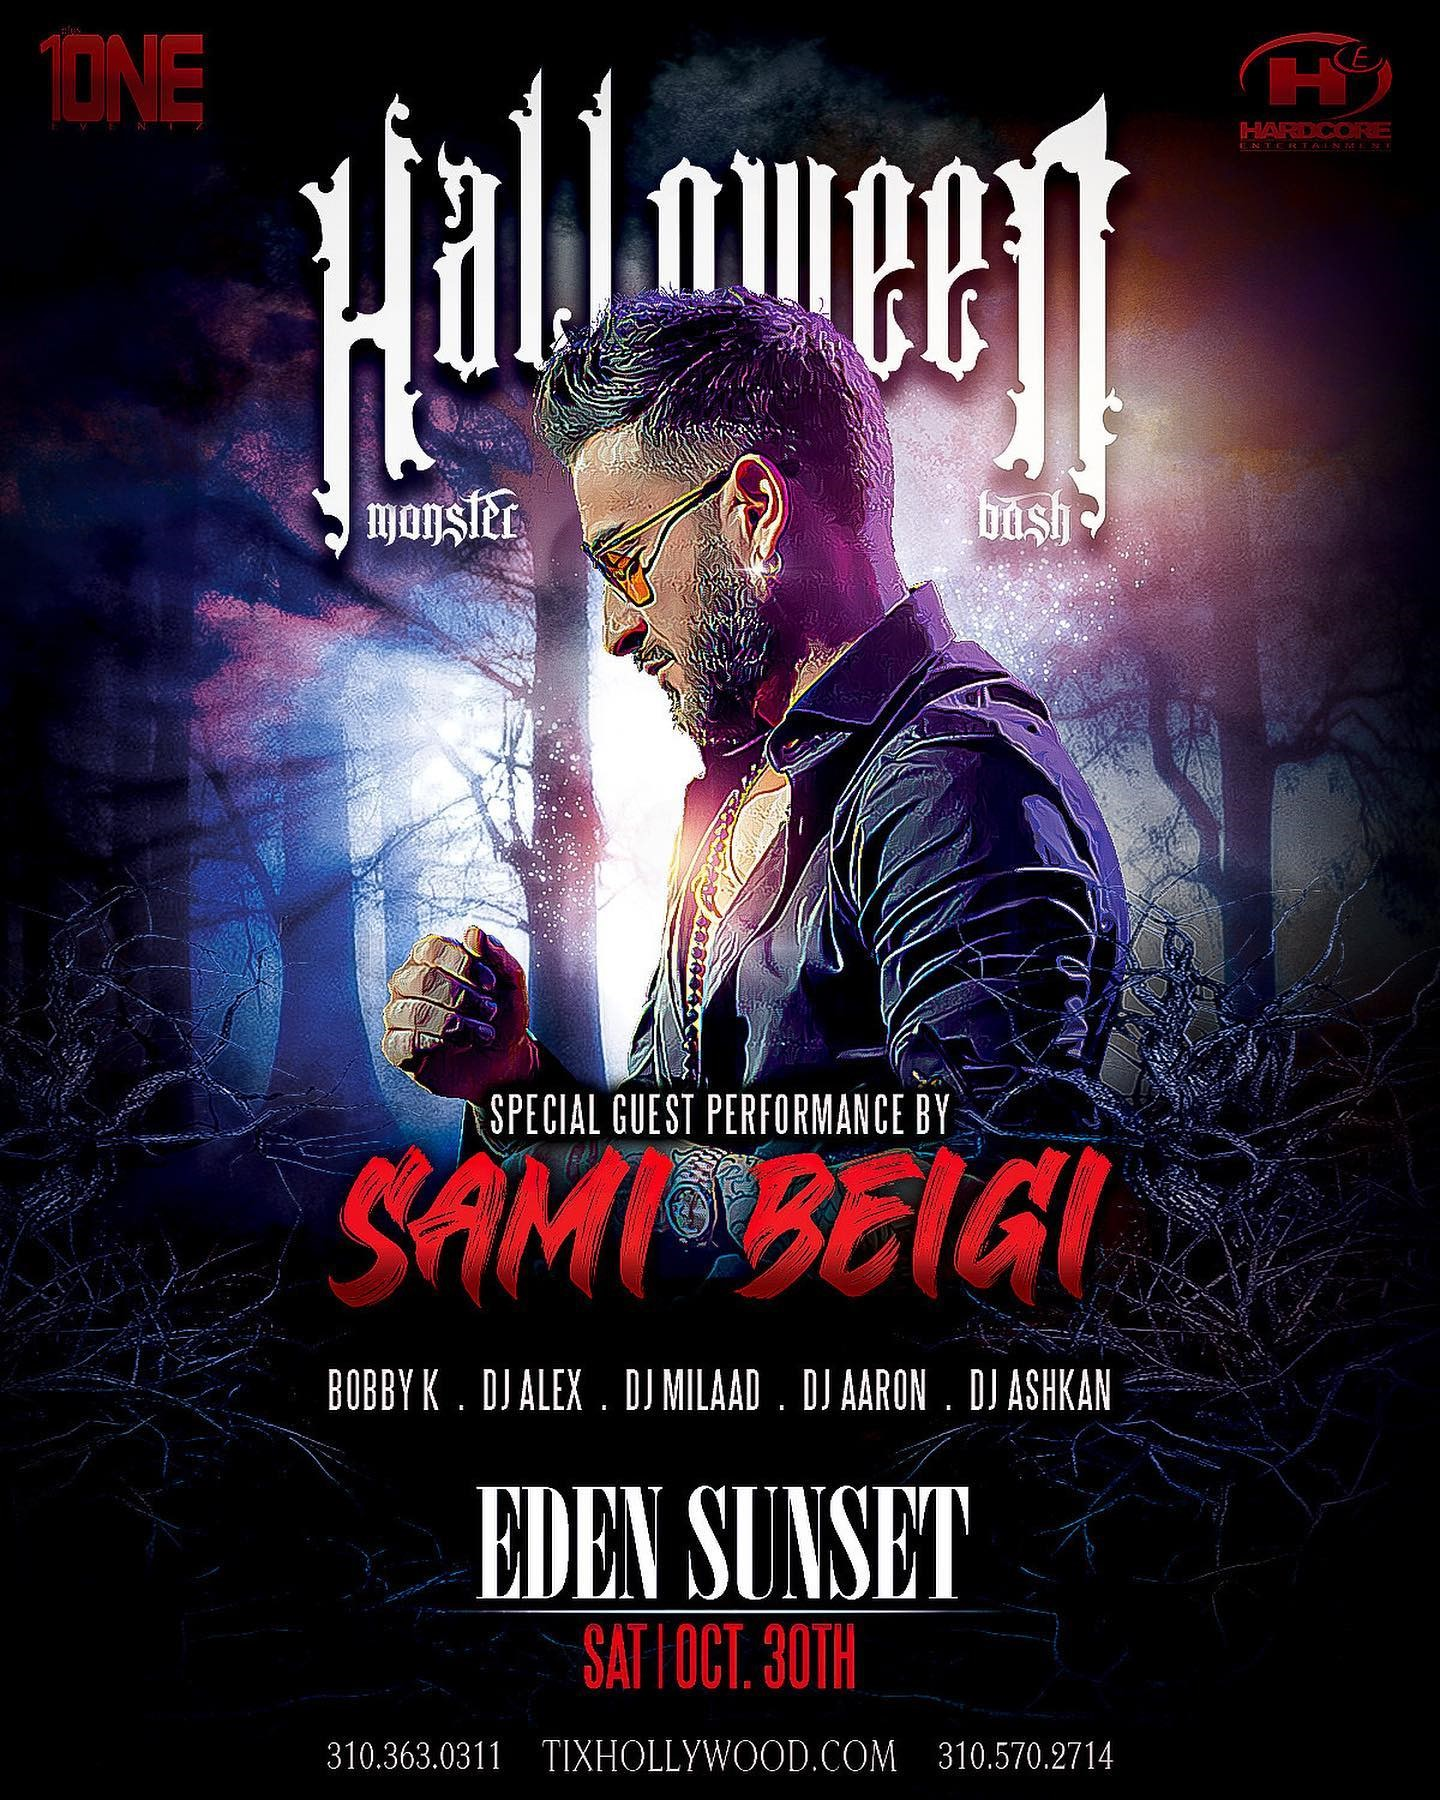 Halloween Party @ EDEN SUNSET (Saturday, Oct. 30) Special Guest Performance By: SAMI BEIGI on Oct 30, 22:00@EDEN SUNSET - Buy tickets and Get information on HARDCORE & PLUS ONE